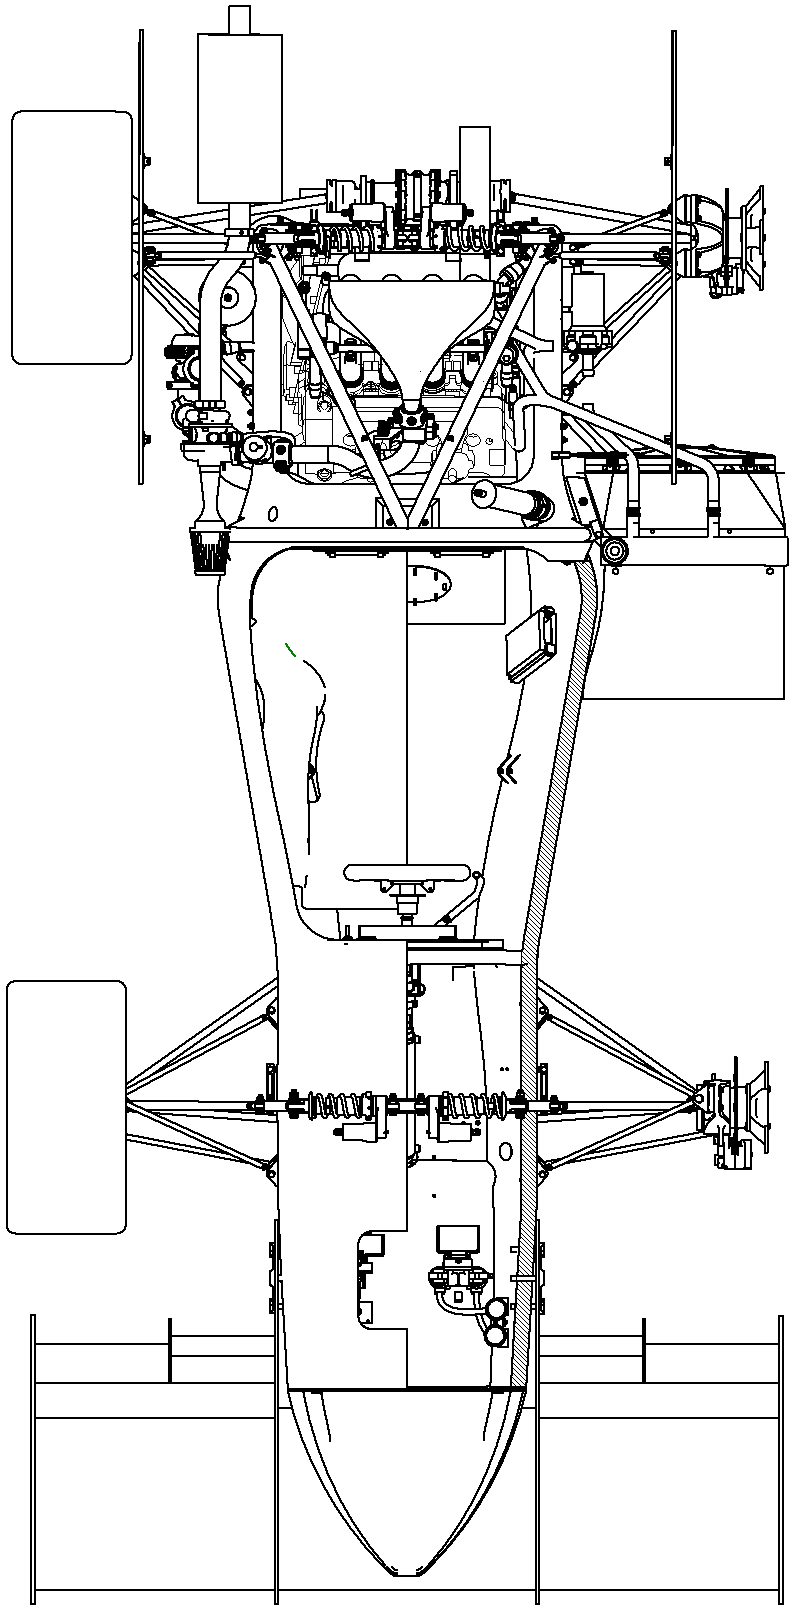 top view.PNG